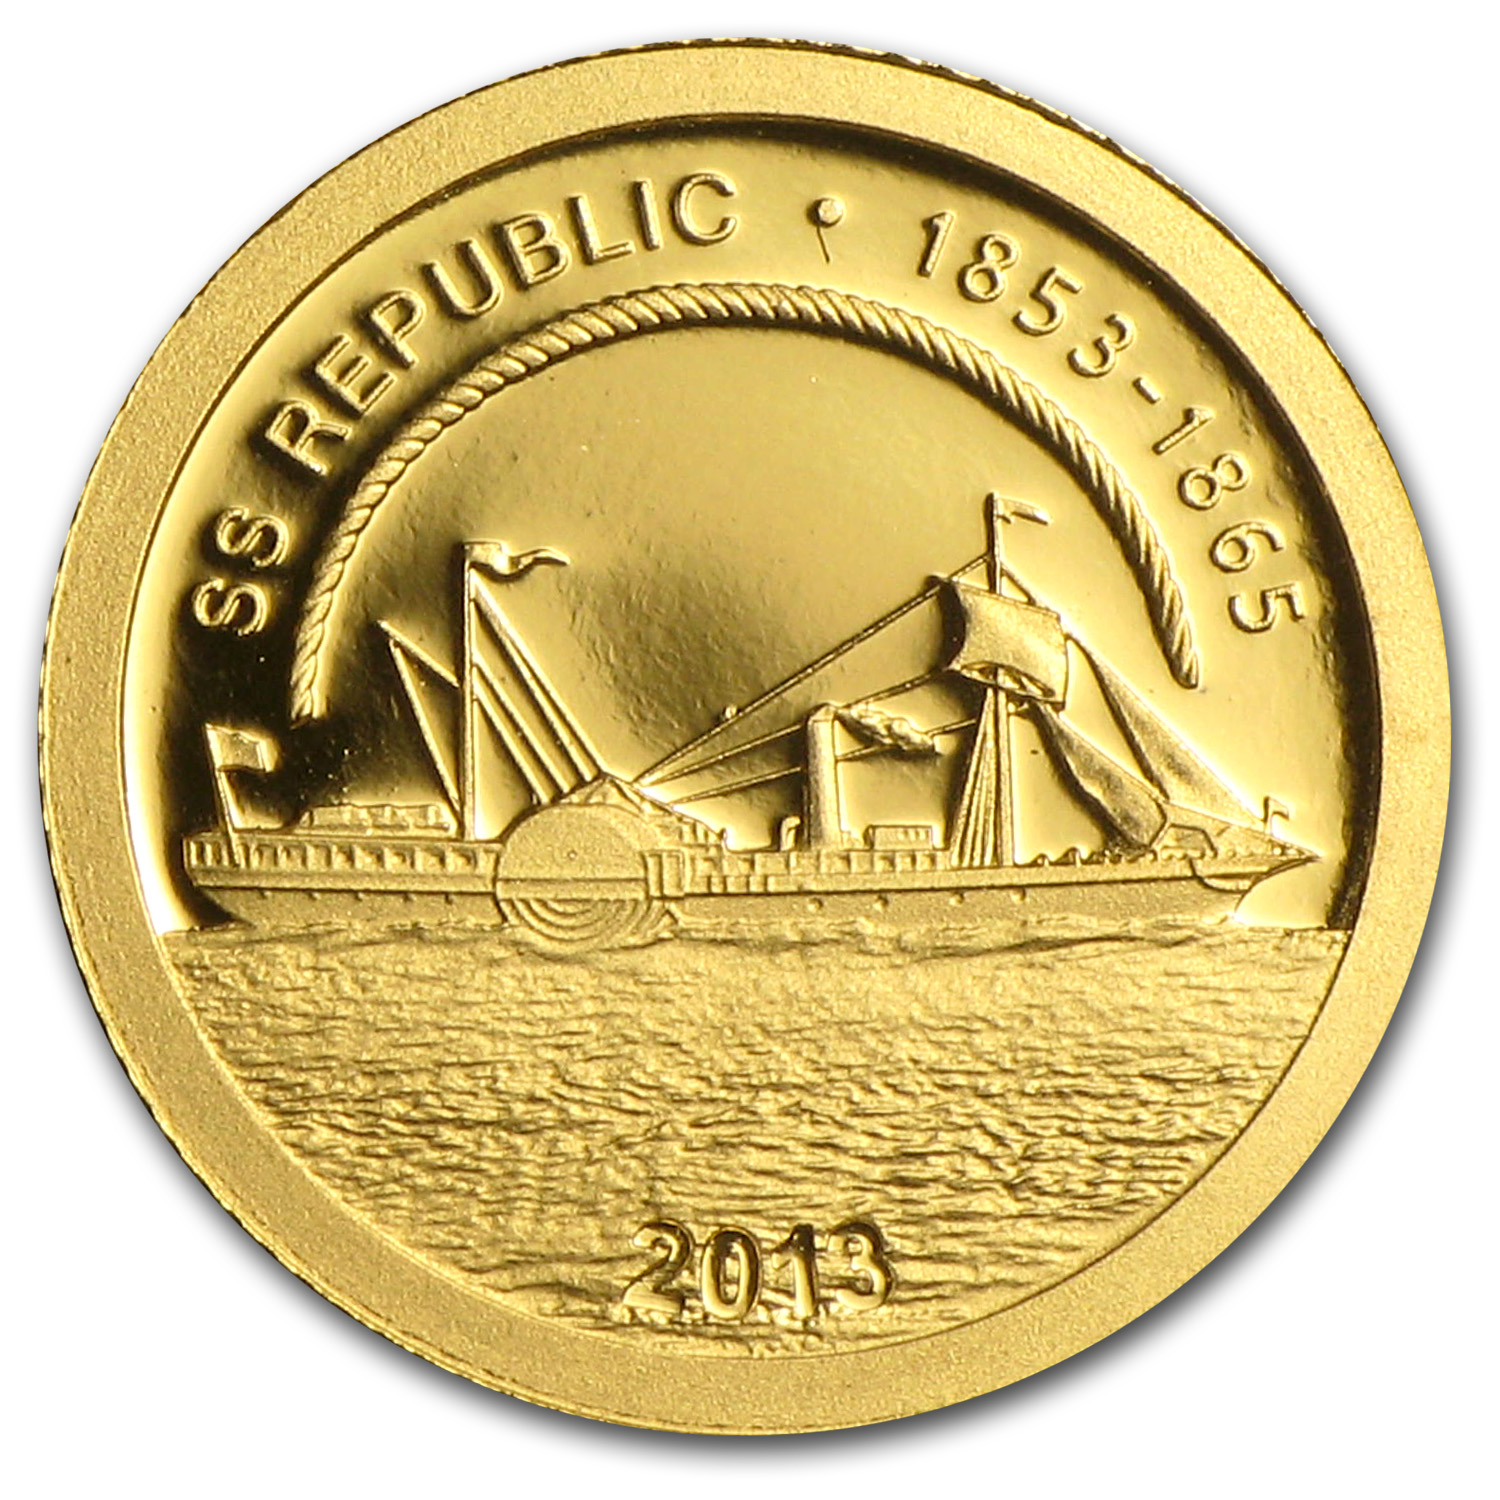 2013 Cook Islands Gold $1 SS Republic 1853-1865 Proof